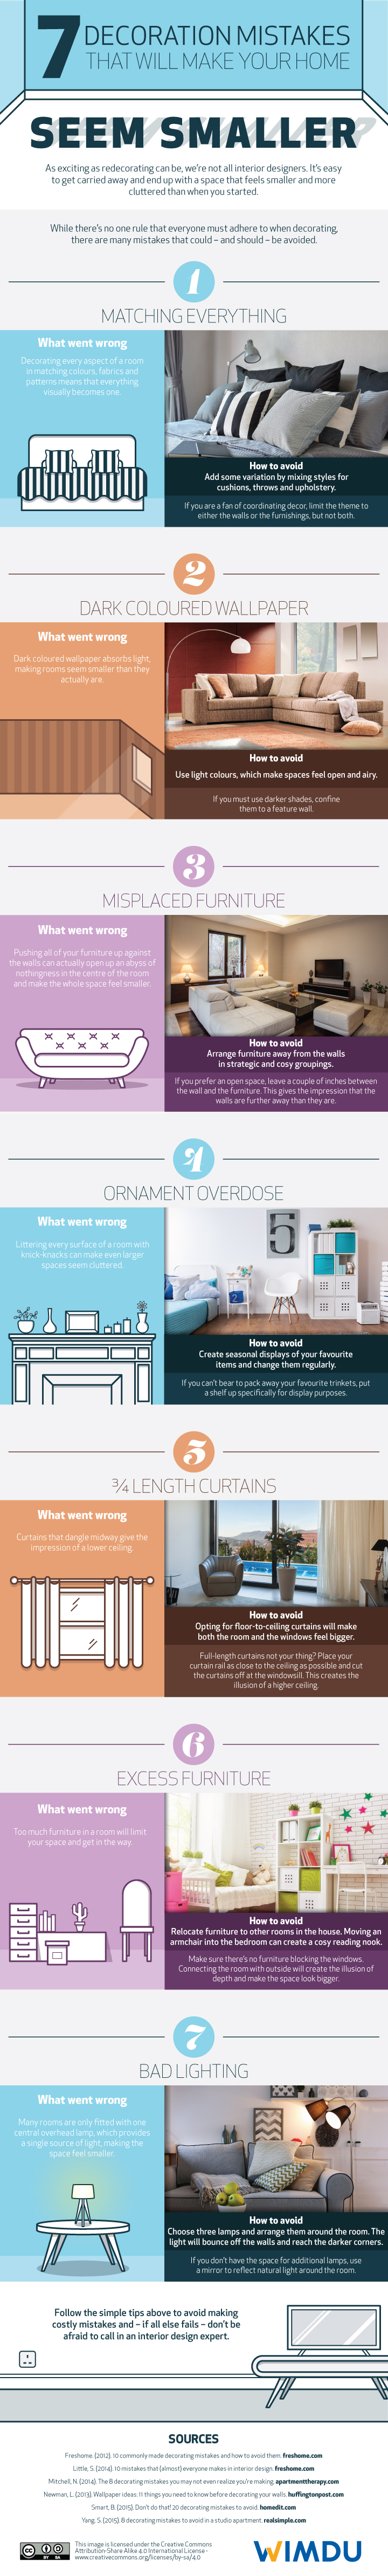 7 decoration mistakes infographic